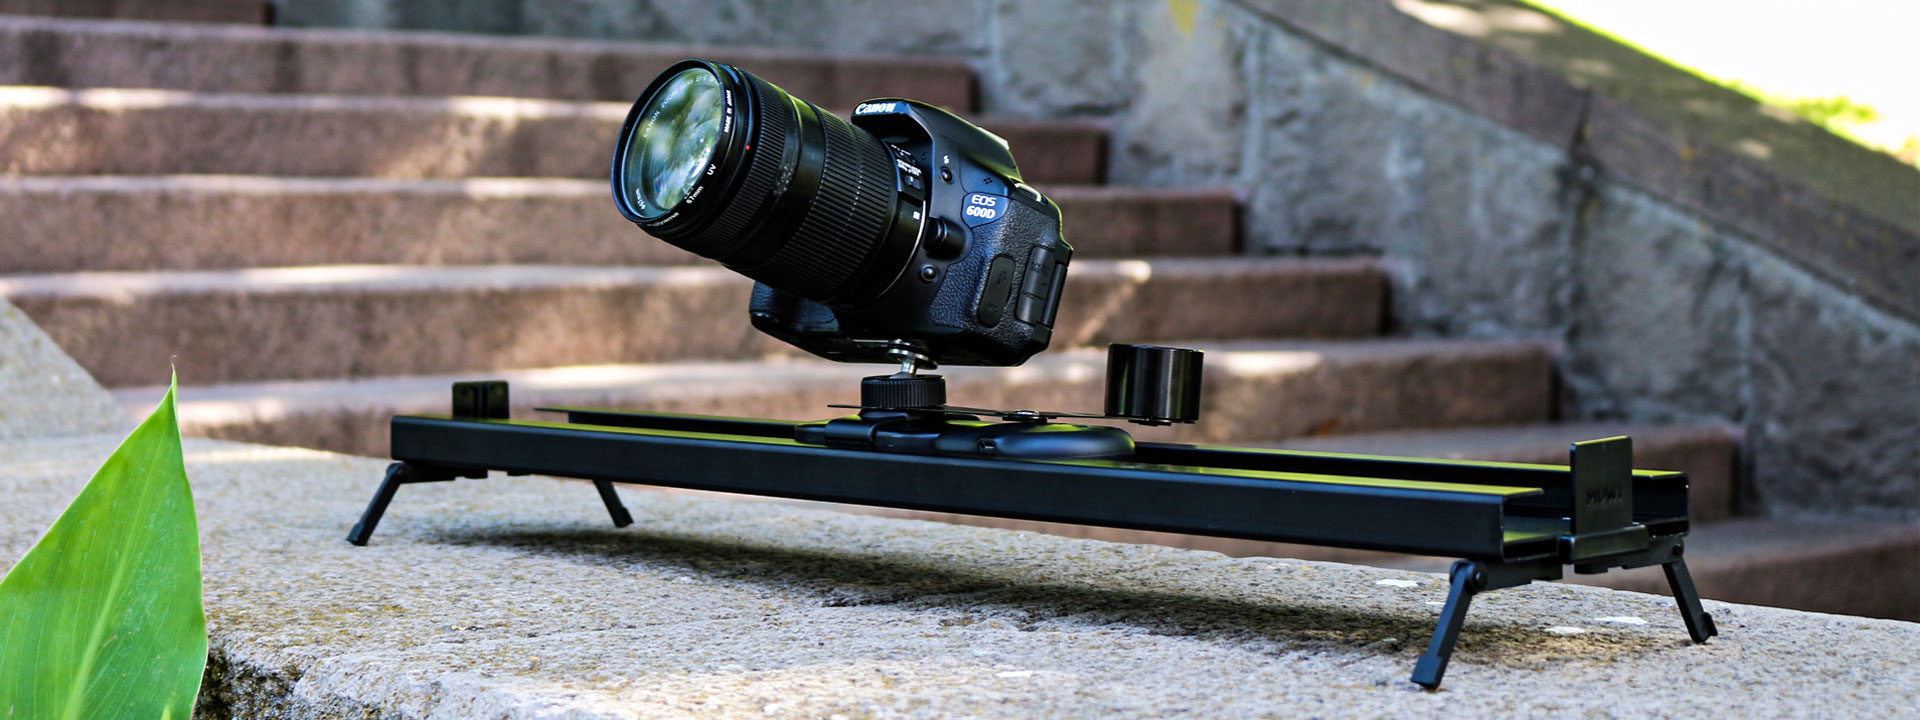 Track is portable, lightweight and easy to setup slider designed for MUWI